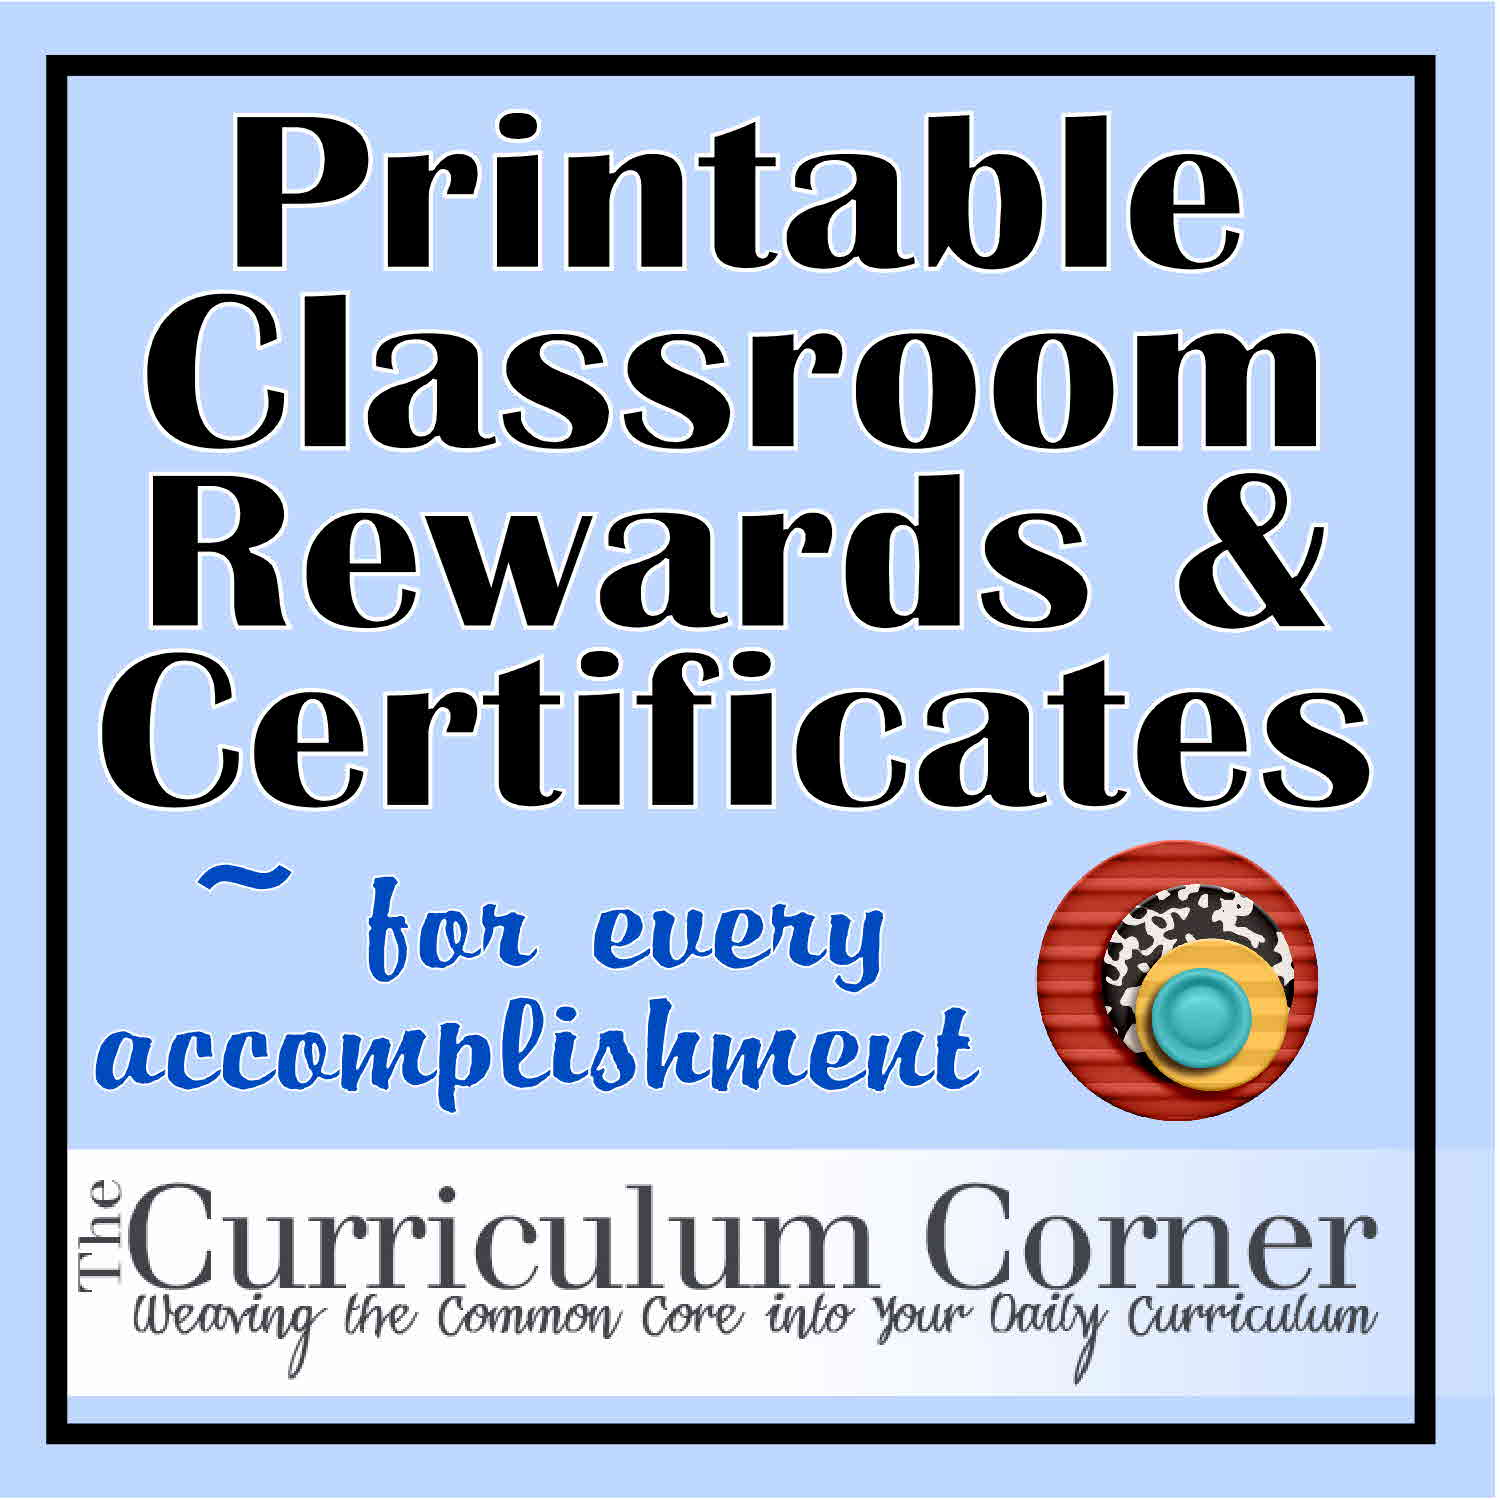 Classroom Design Printable : Free printable classroom rewards and certificates